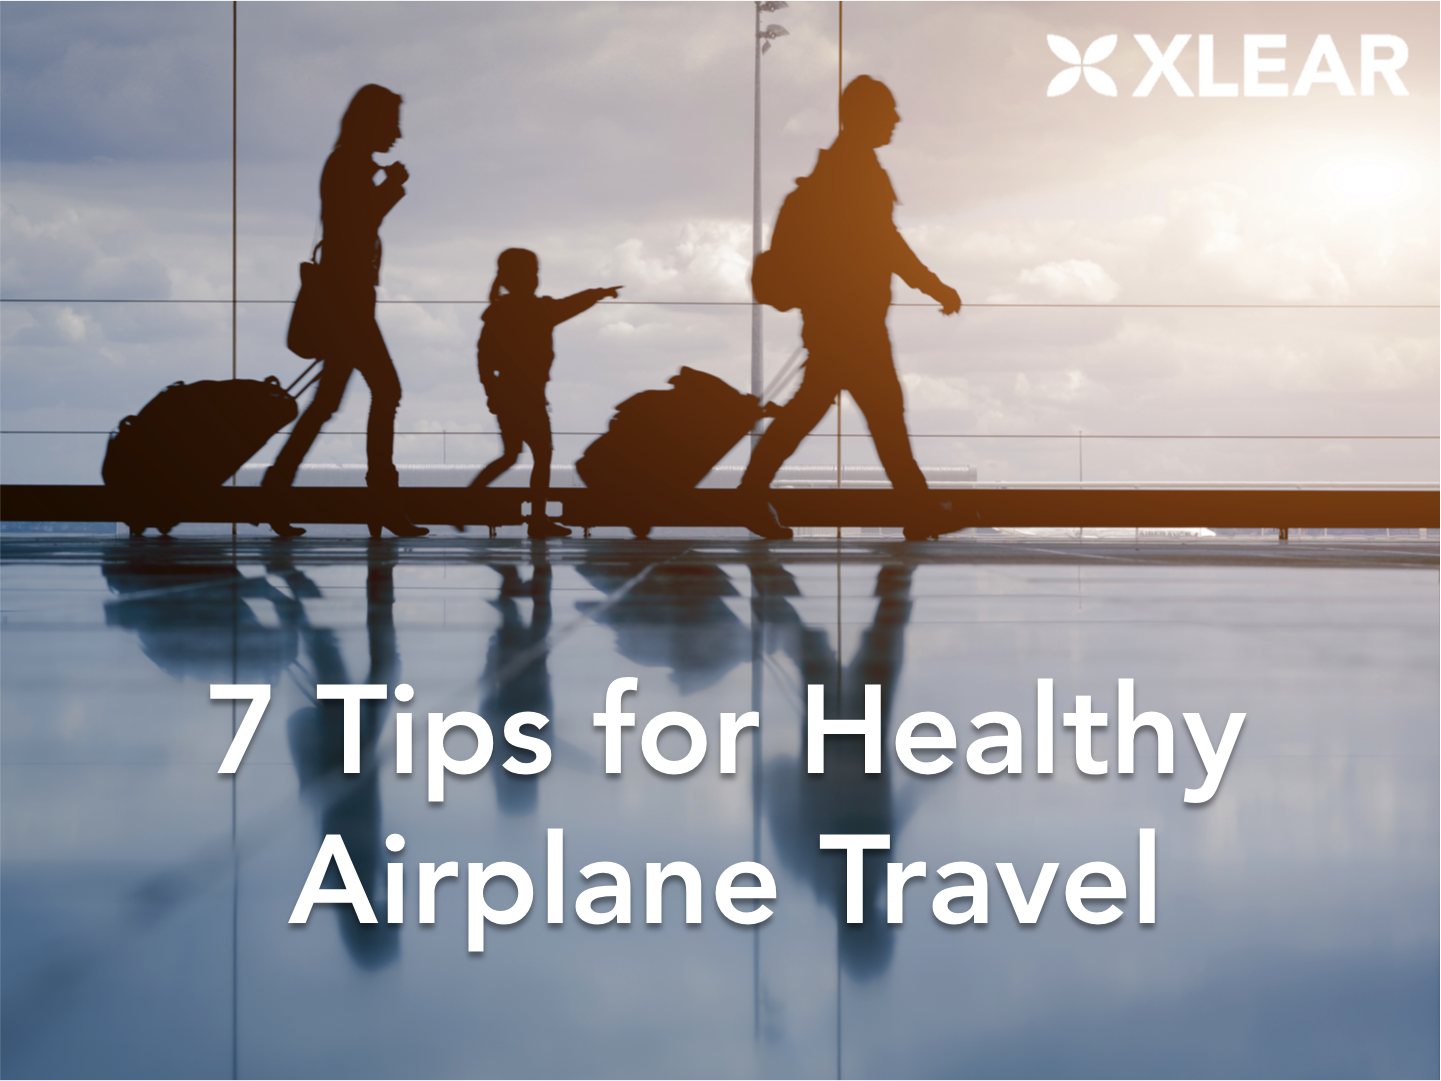 Tips for healthy traveling